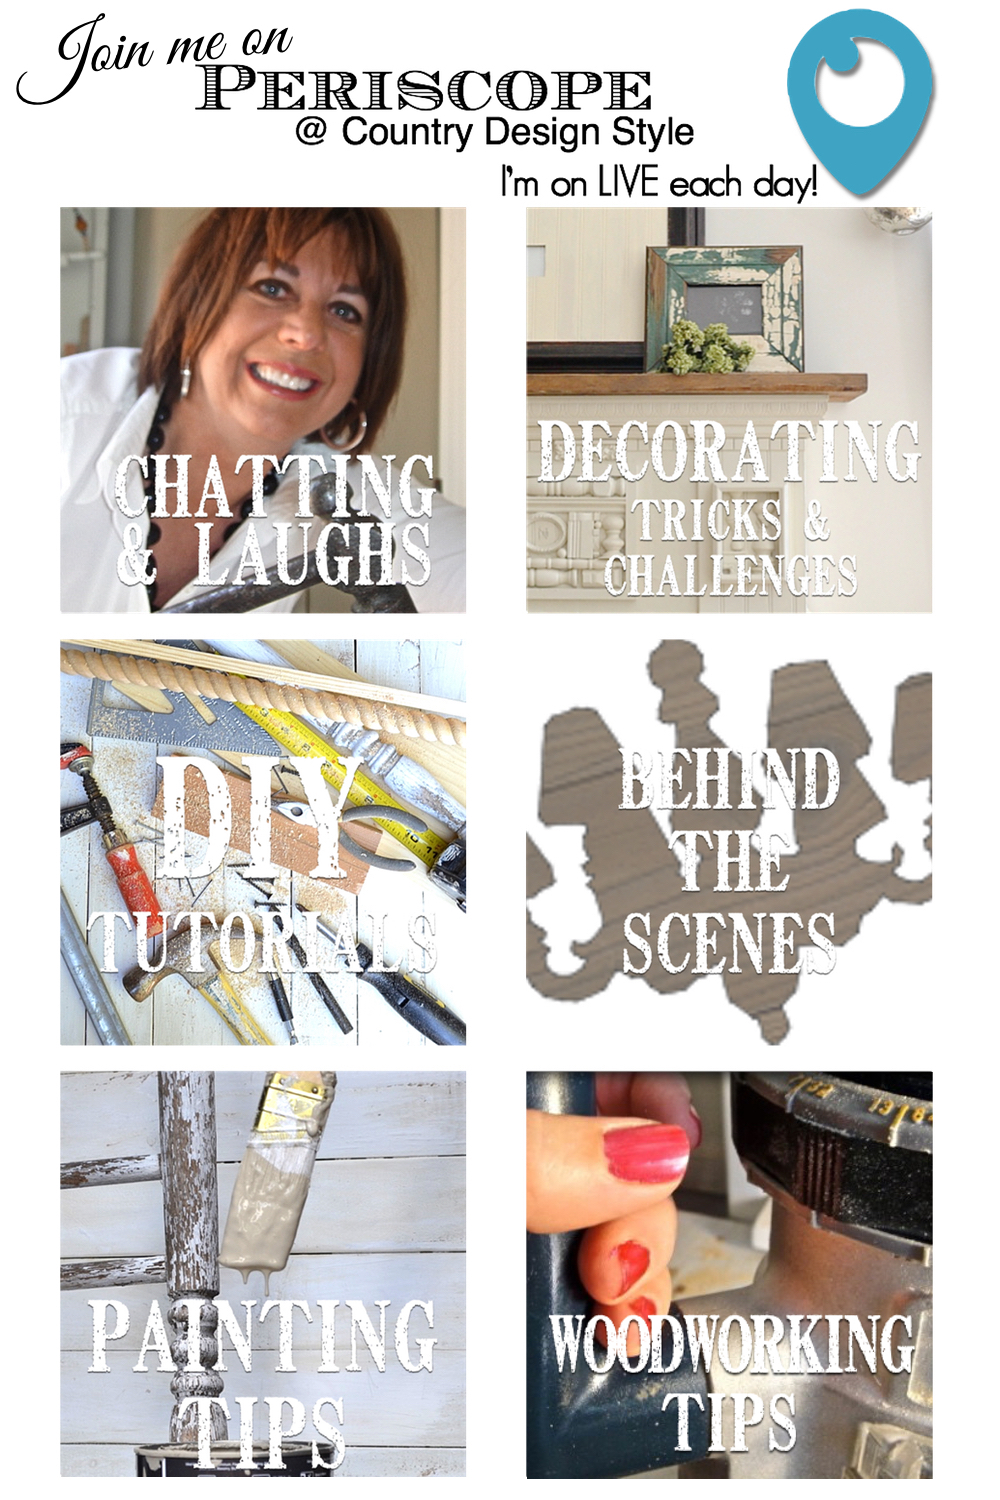 Periscope Live chats. Come join the fun and creativity live daily. Country Design Style